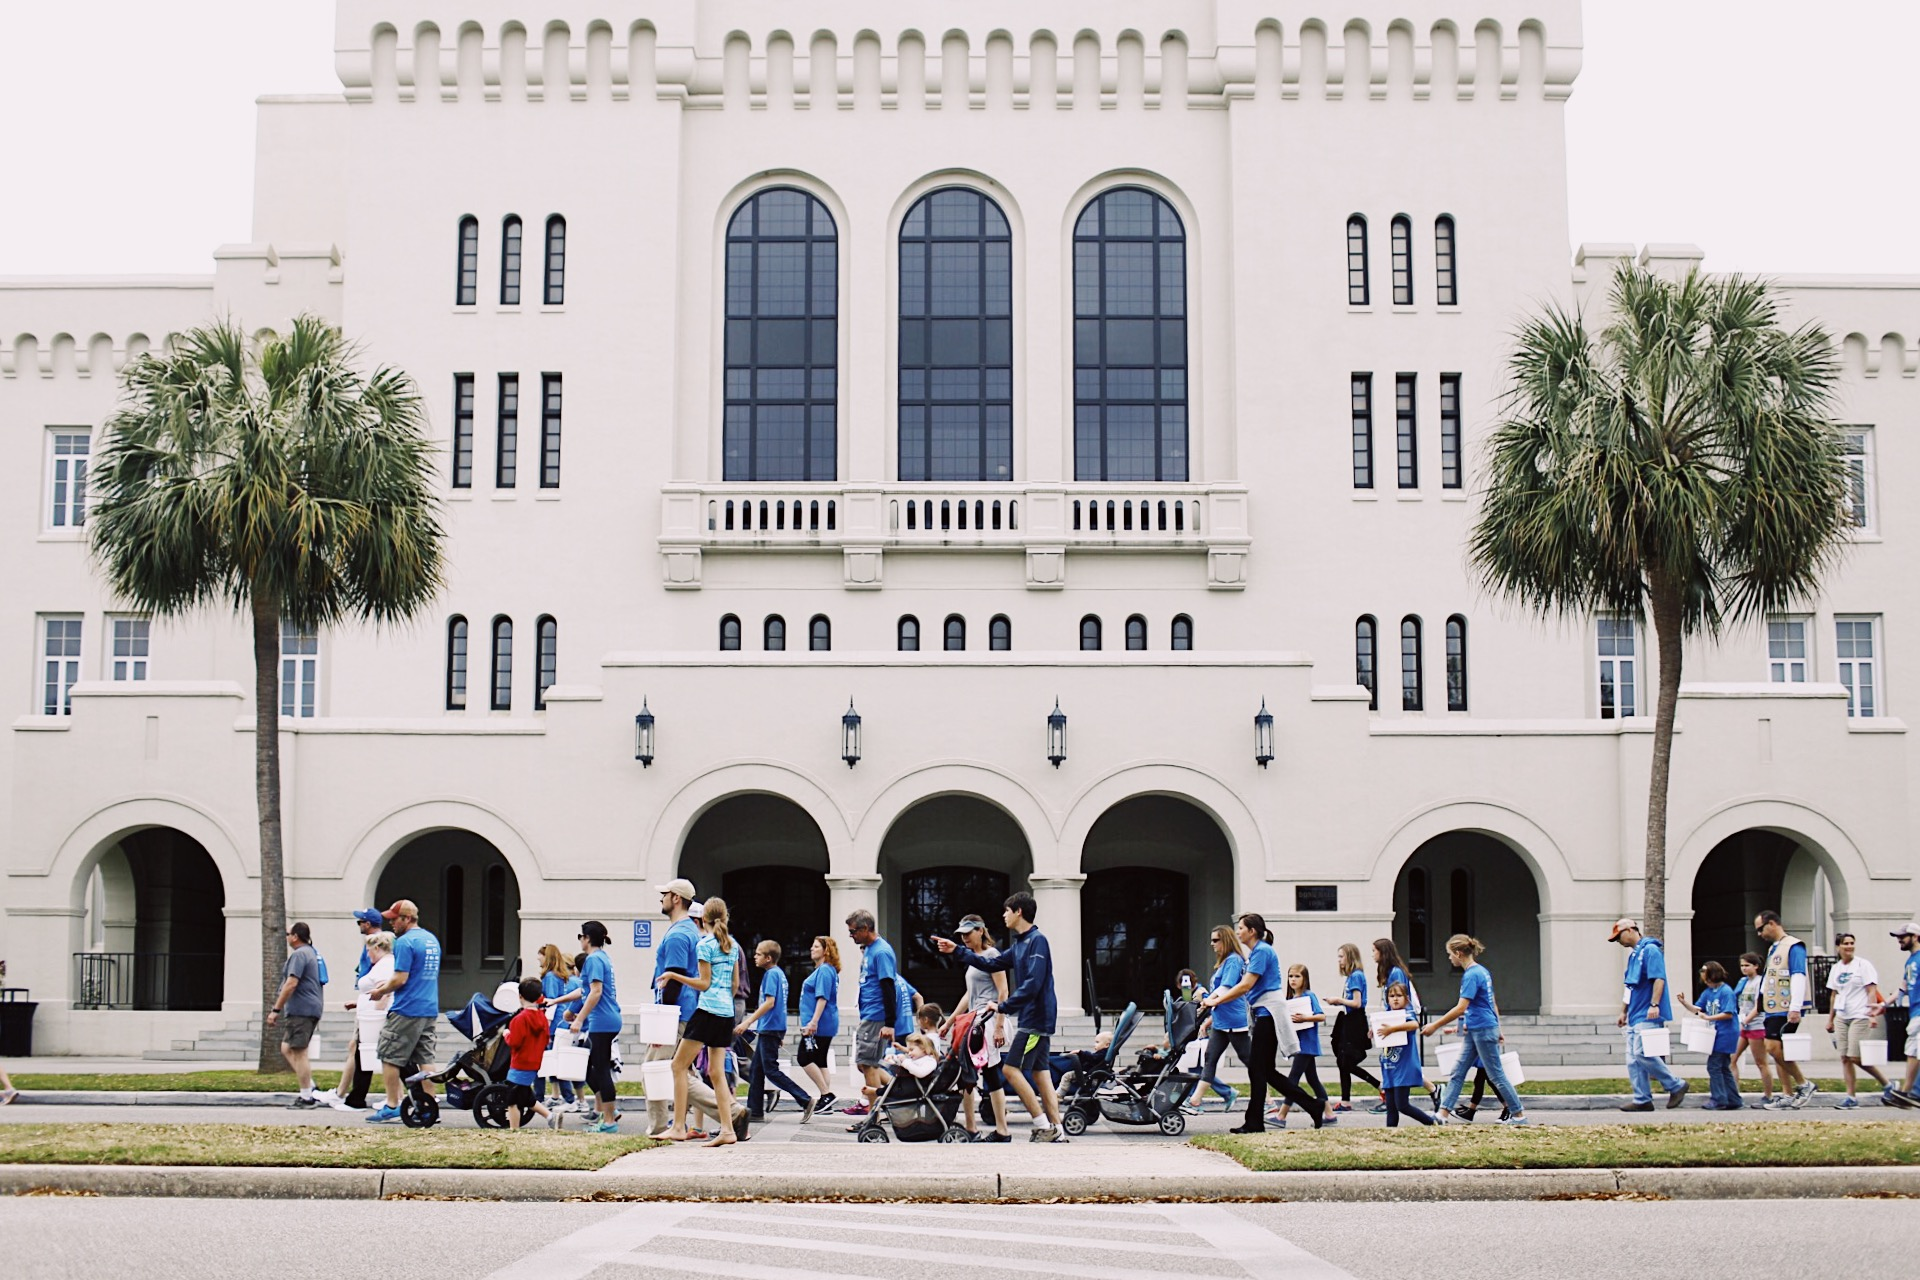 Walkers pass through the Citadel campus at Water Mission's Walk for Water.